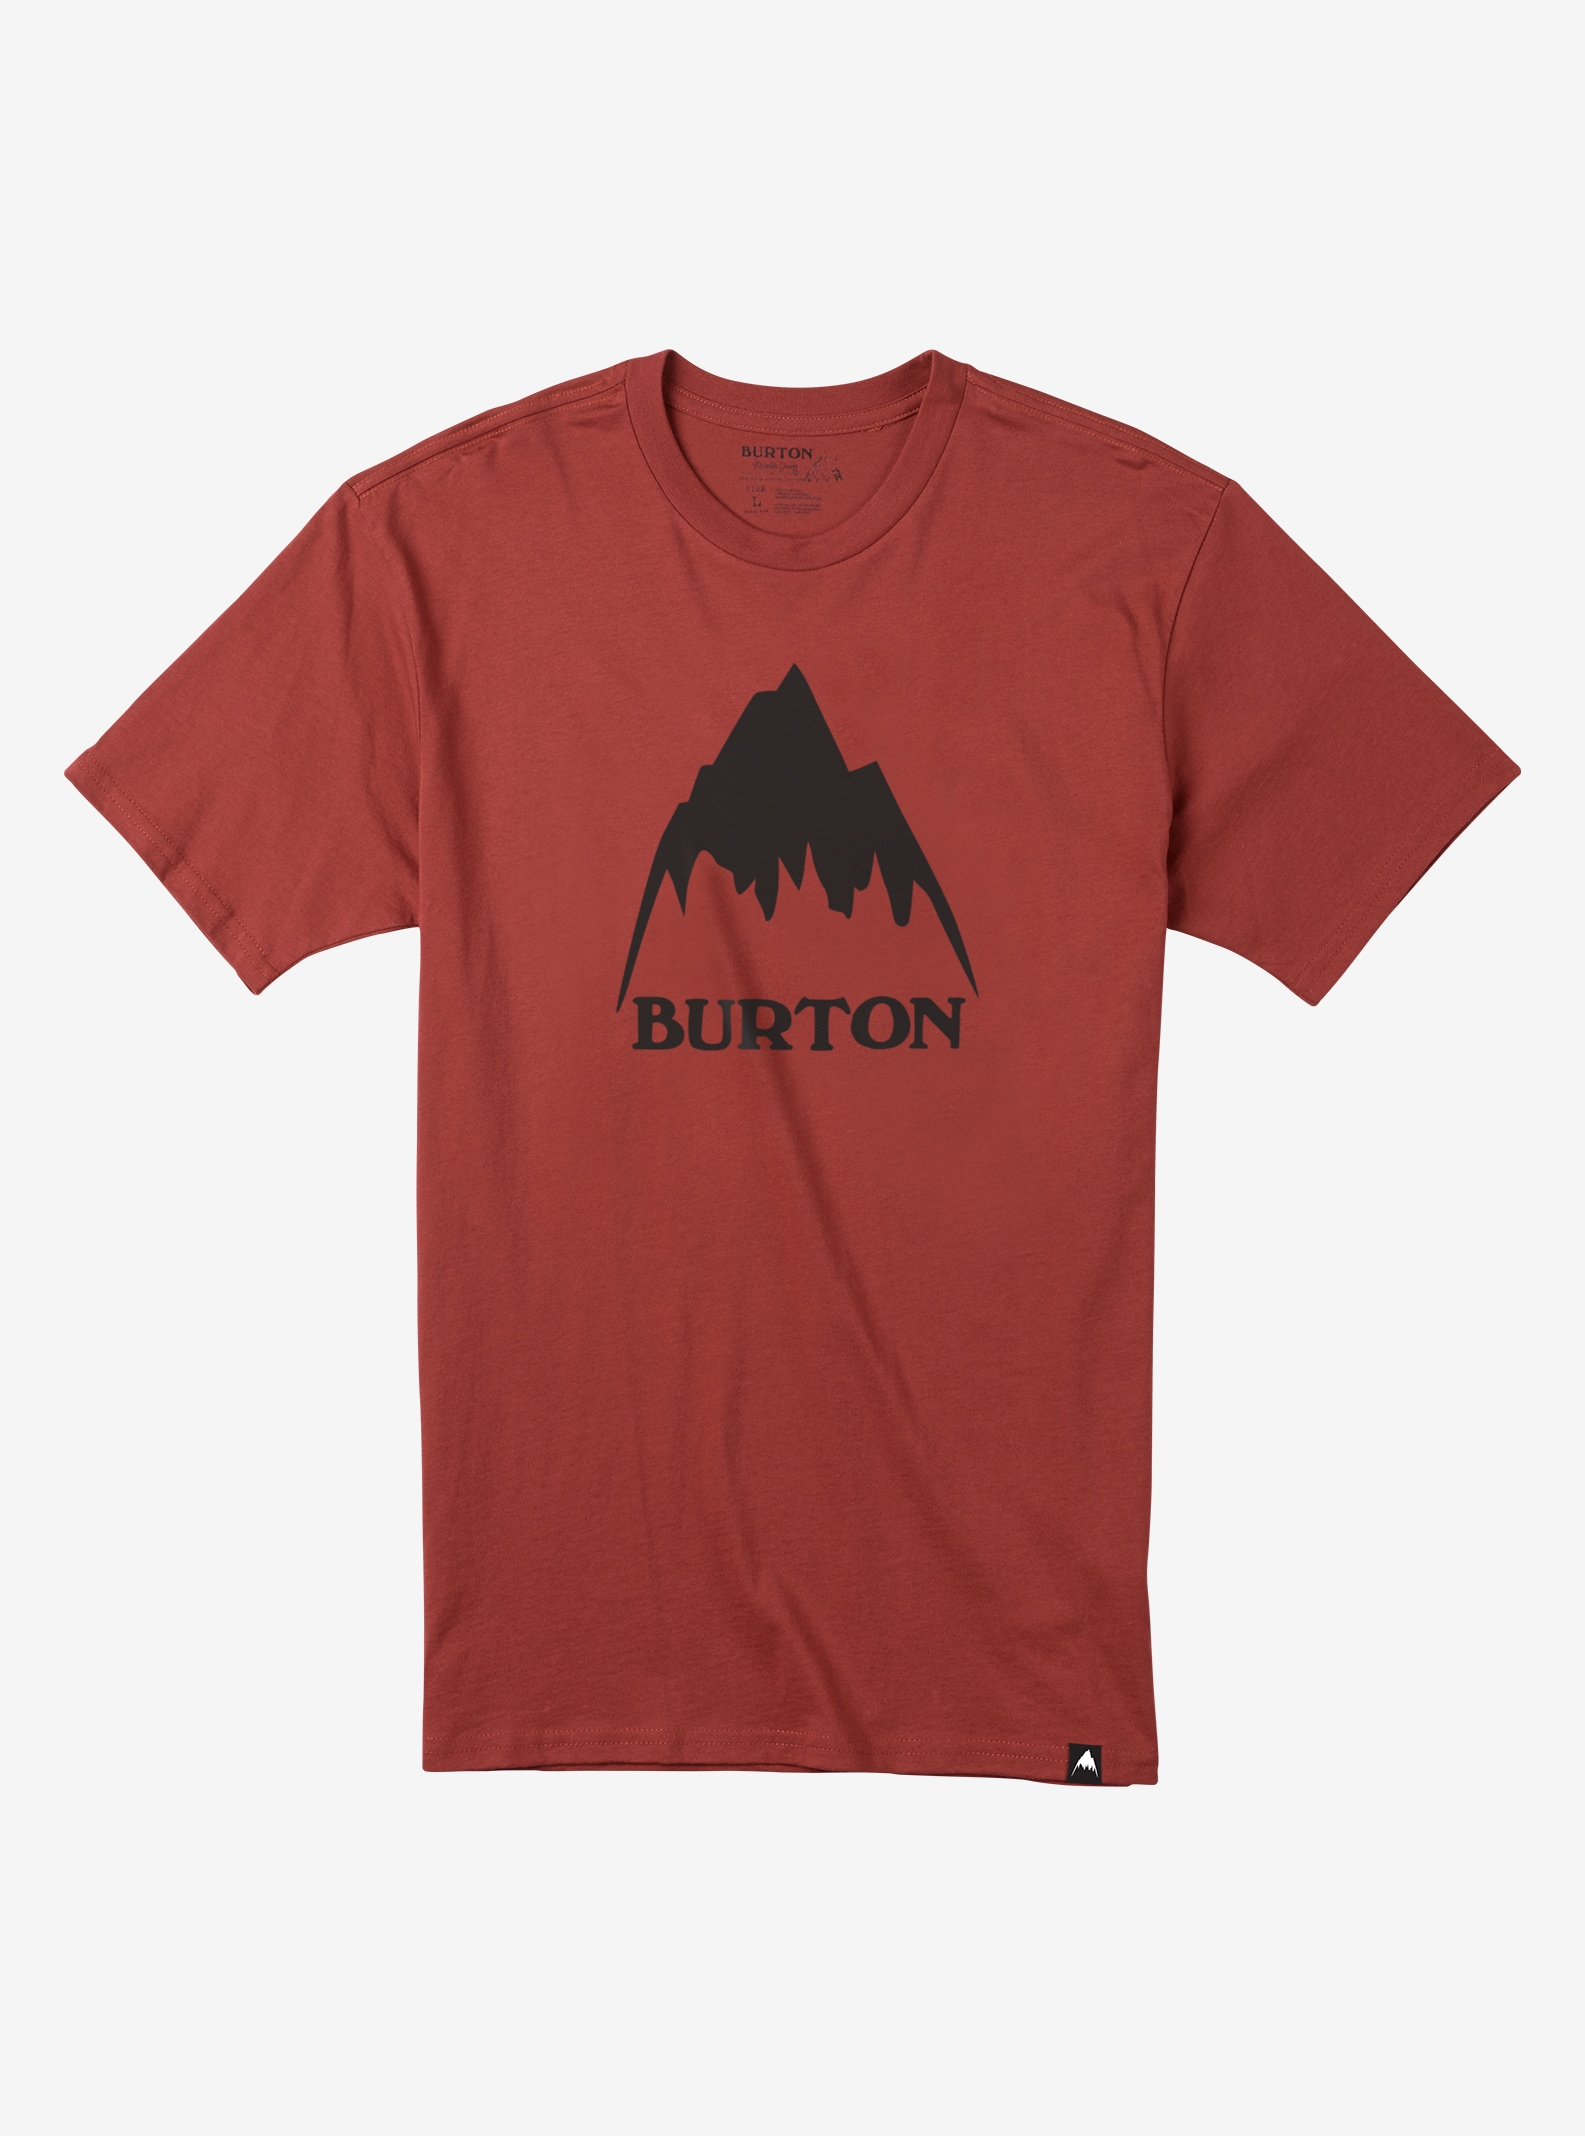 Burton Classic Mountain T-Shirt angezeigt in Tandori